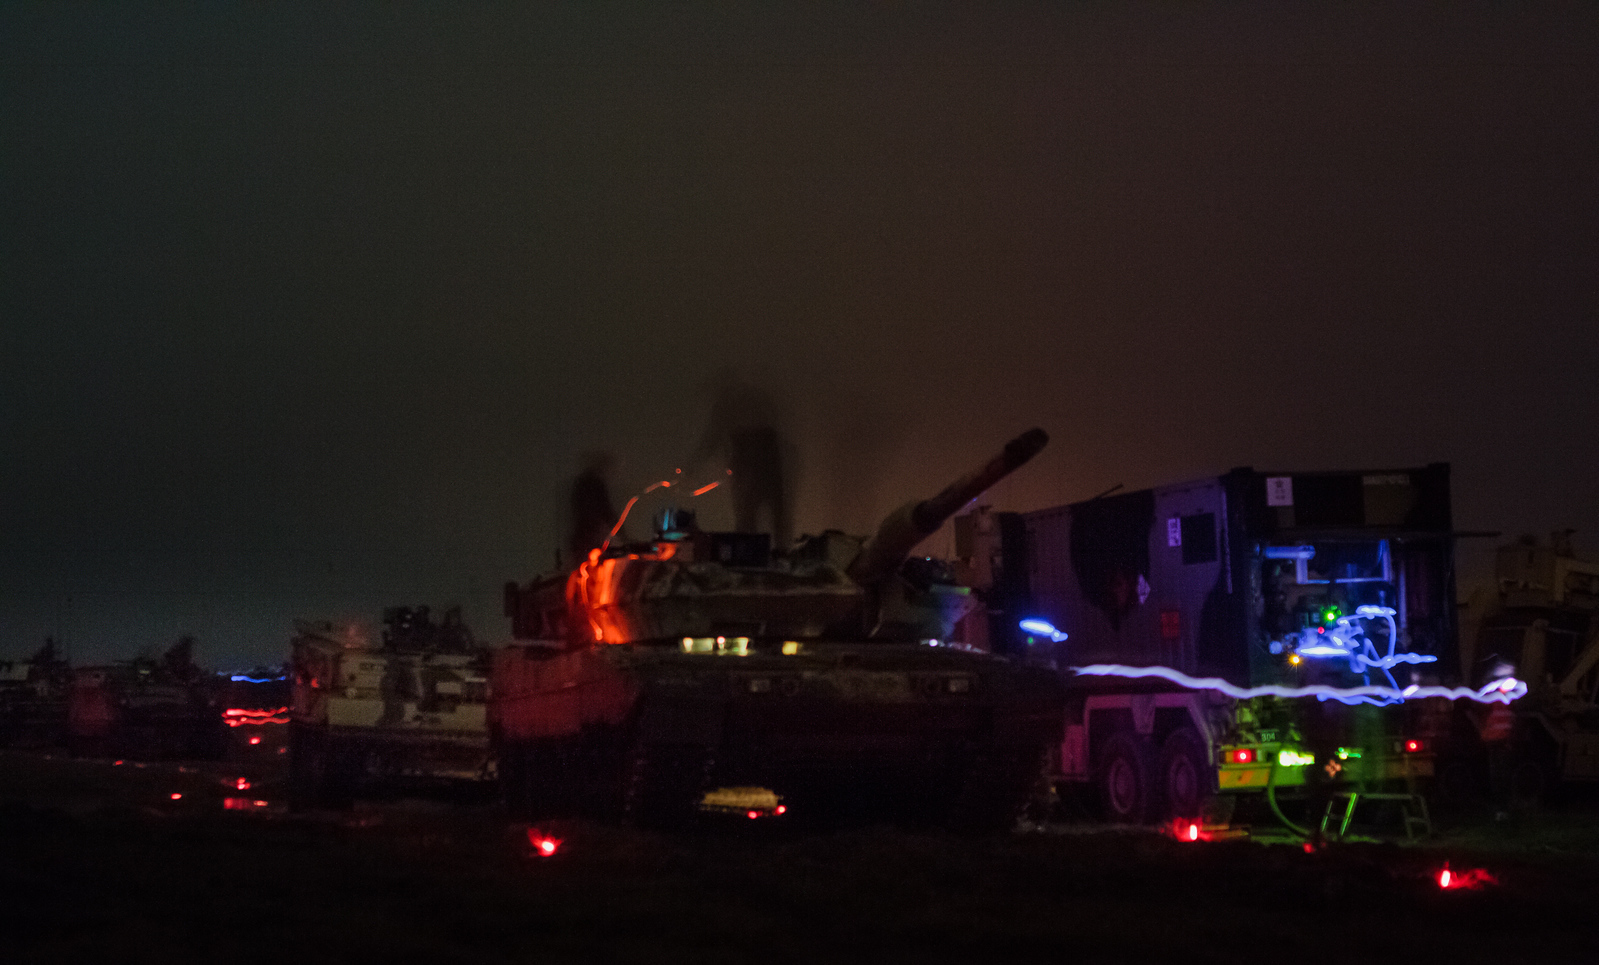 R3P, Refulling and rearm of a main battle tank group